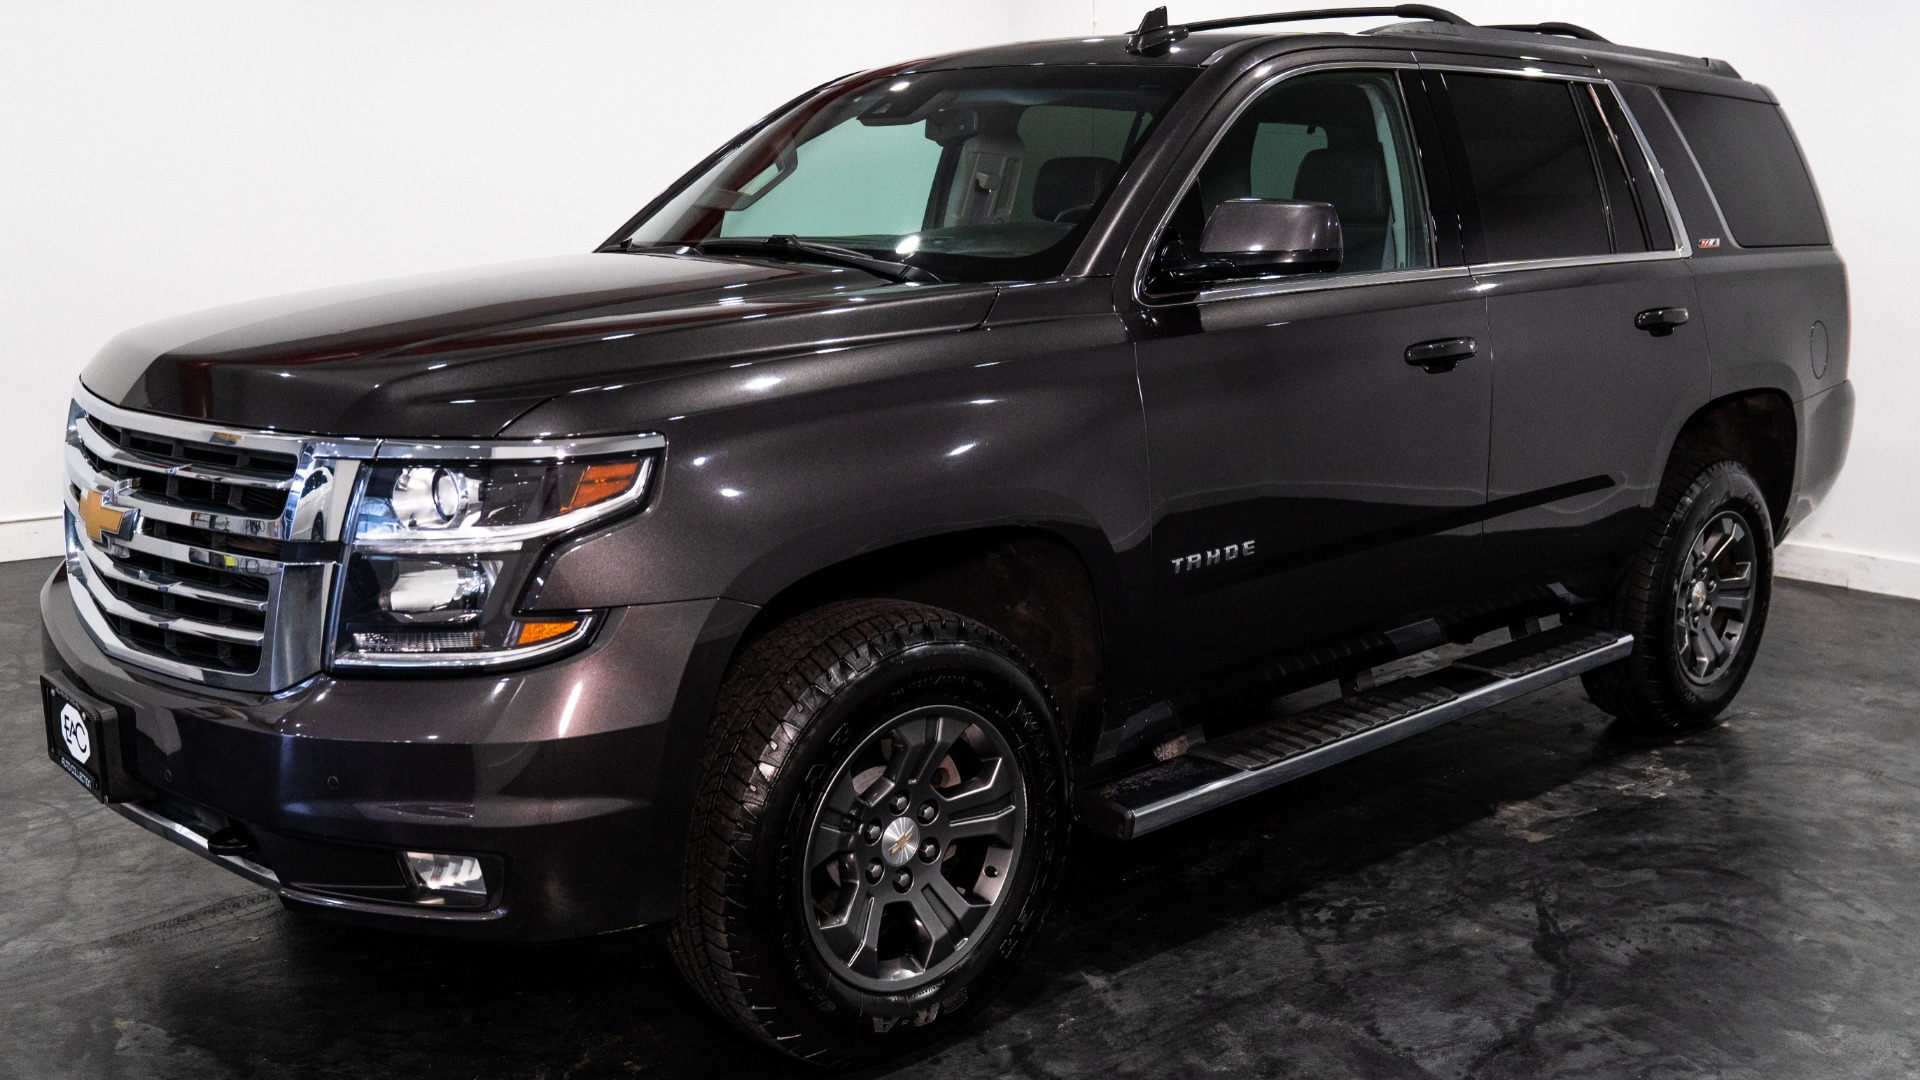 Used 2016 Chevrolet Tahoe LT for sale $30,999 at Empire Auto Collection in Warren MI 48091 1